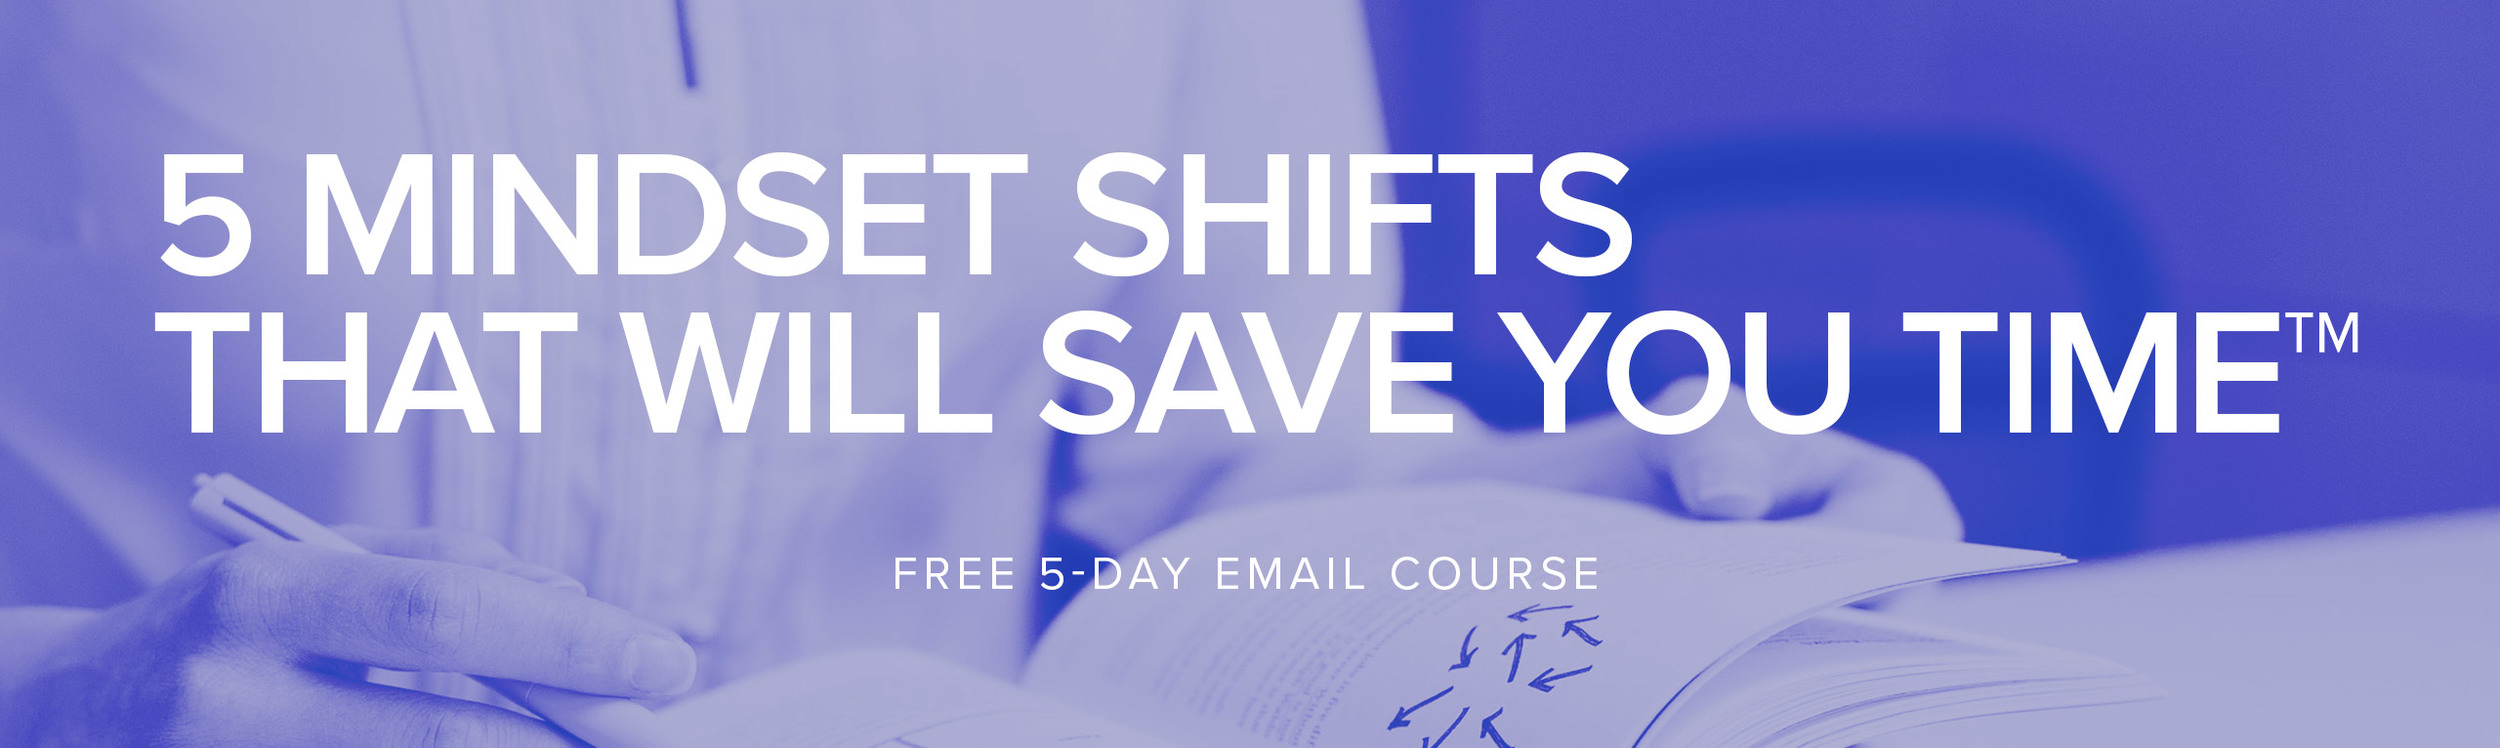 Discover the  5 mindset shifts  that might be killing your productivity and wasting your time. Join me on the journey to being in control of our schedules, feeling on top of things, and saving time.